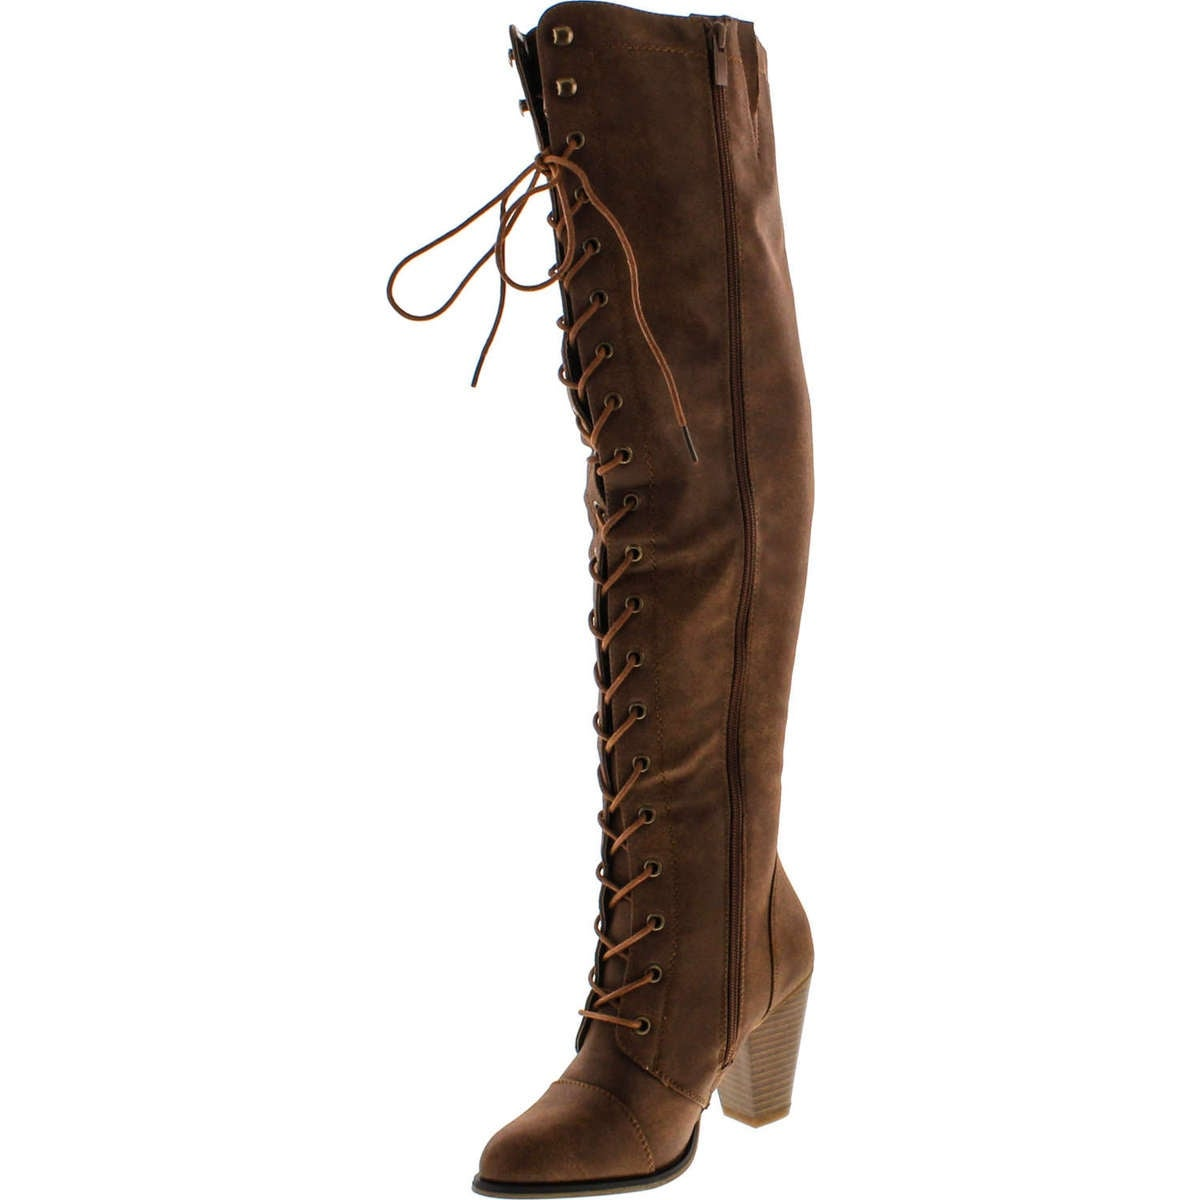 7874fce504c Forever Camila-48 Womens Chunky Heel Lace Up Over The Knee High Riding Boots